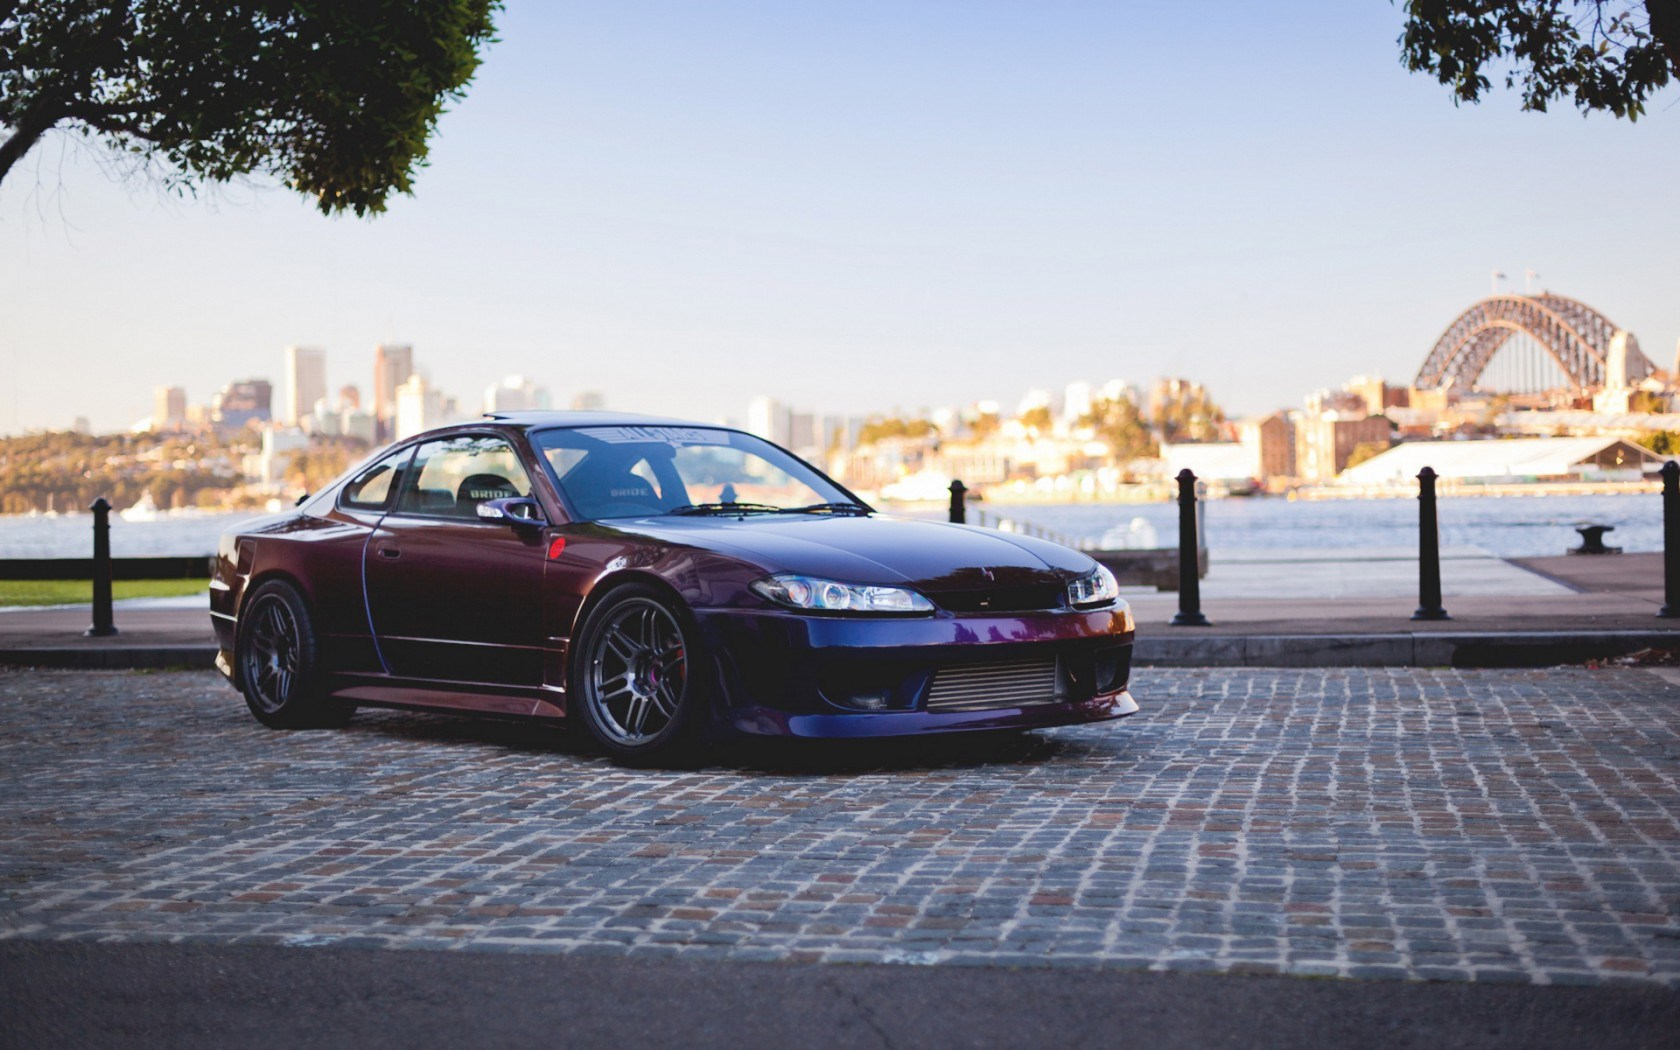 Nissan Silvia Spec-R S15 Tuning Car Parking